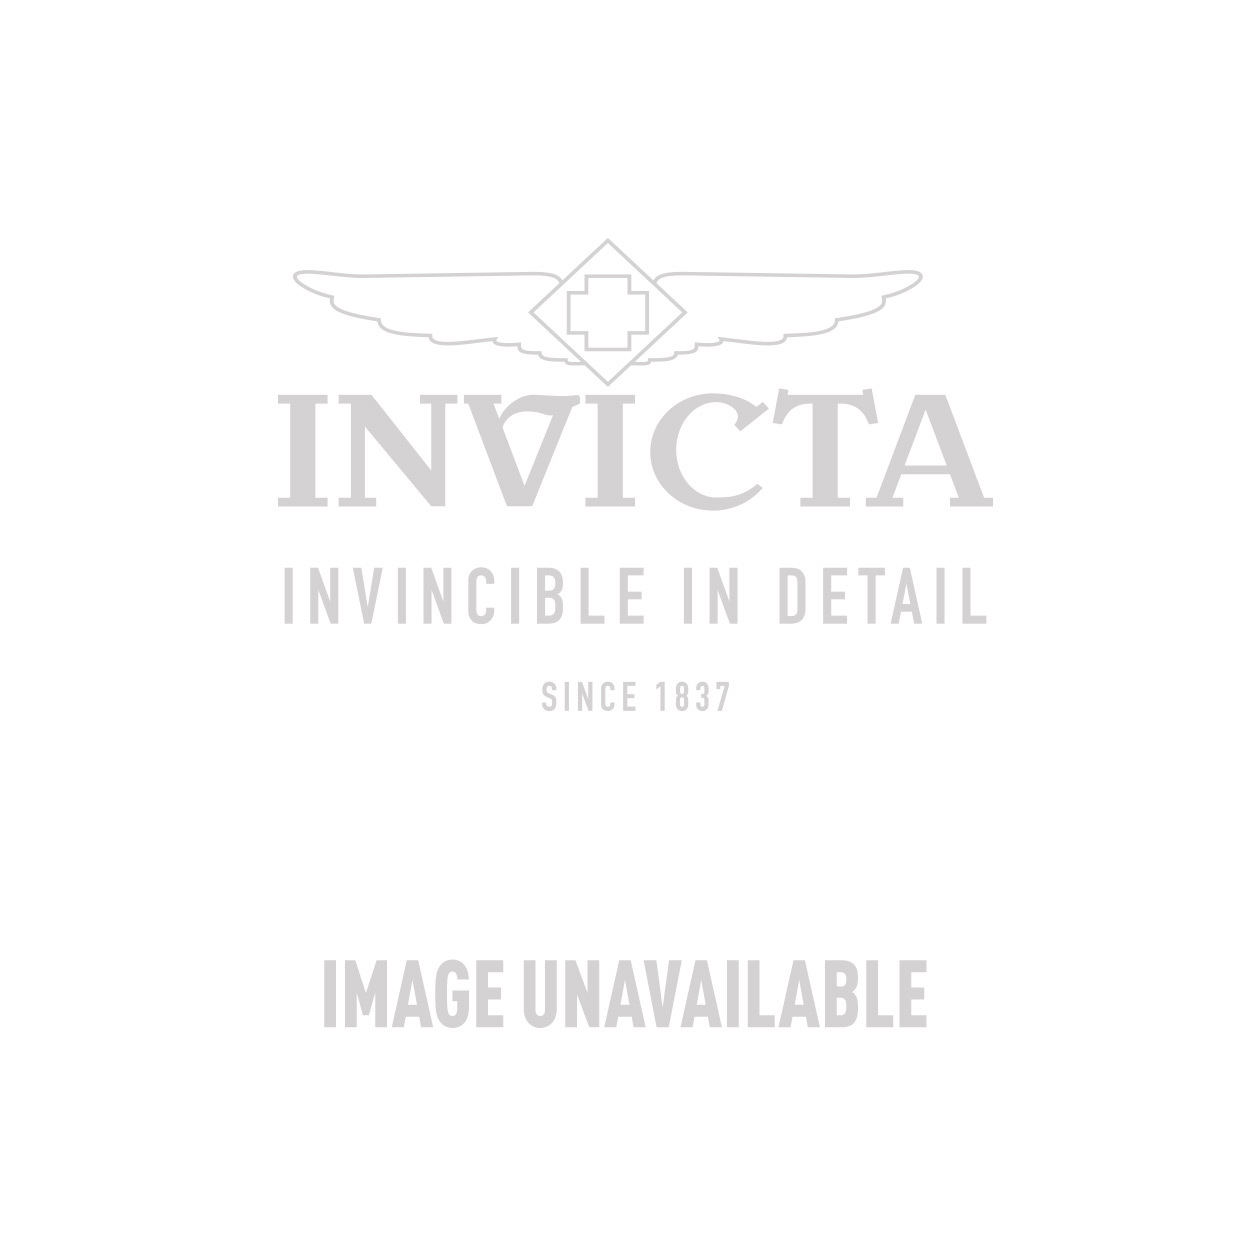 Invicta Specialty Swiss Movement Quartz Watch - Gold, Stainless Steel case with Steel, Gold tone Stainless Steel band - Model 0622